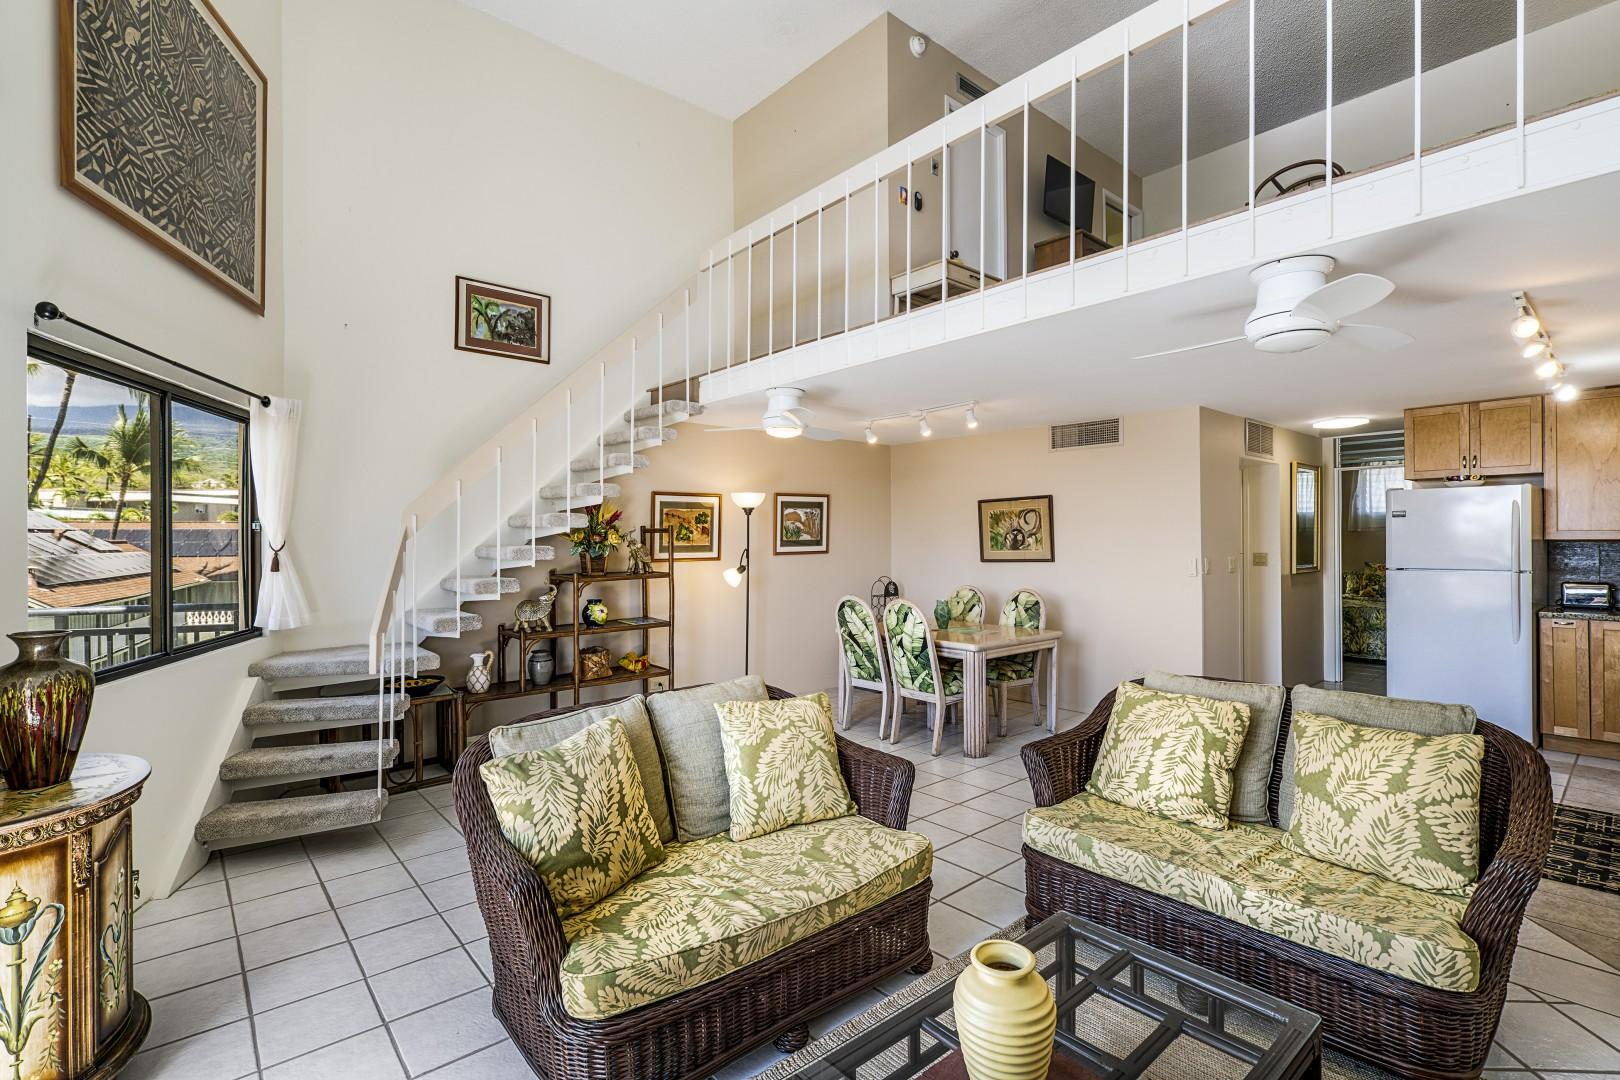 Living room, facing toward the stairs, leading to the upstairs bedroom.